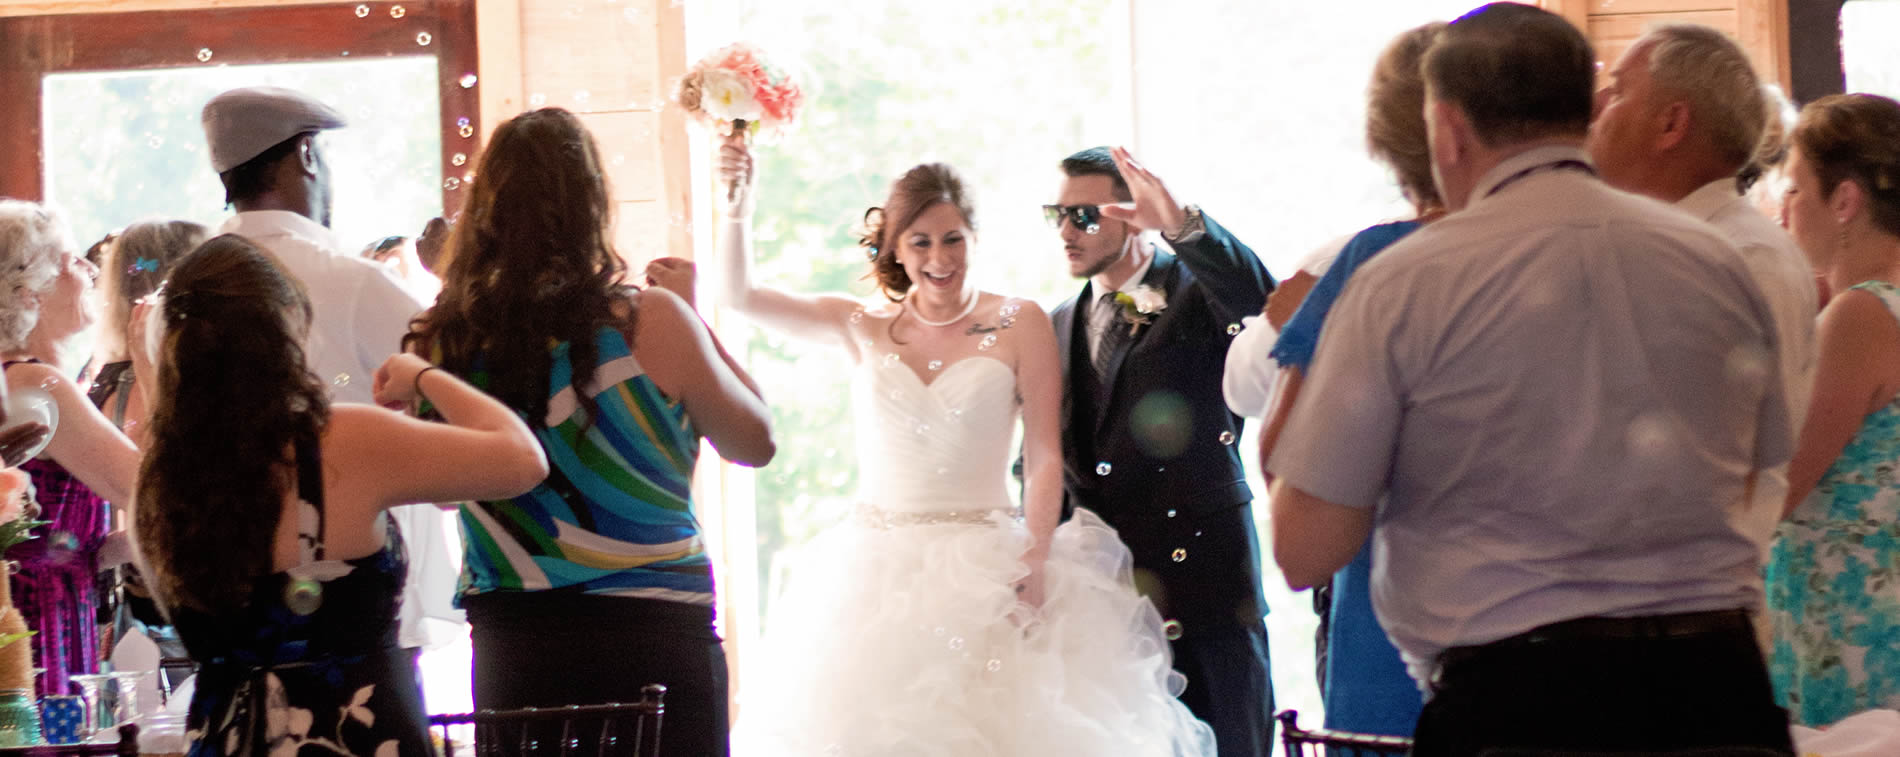 weddings sutter creek california gold country weddings and receptions